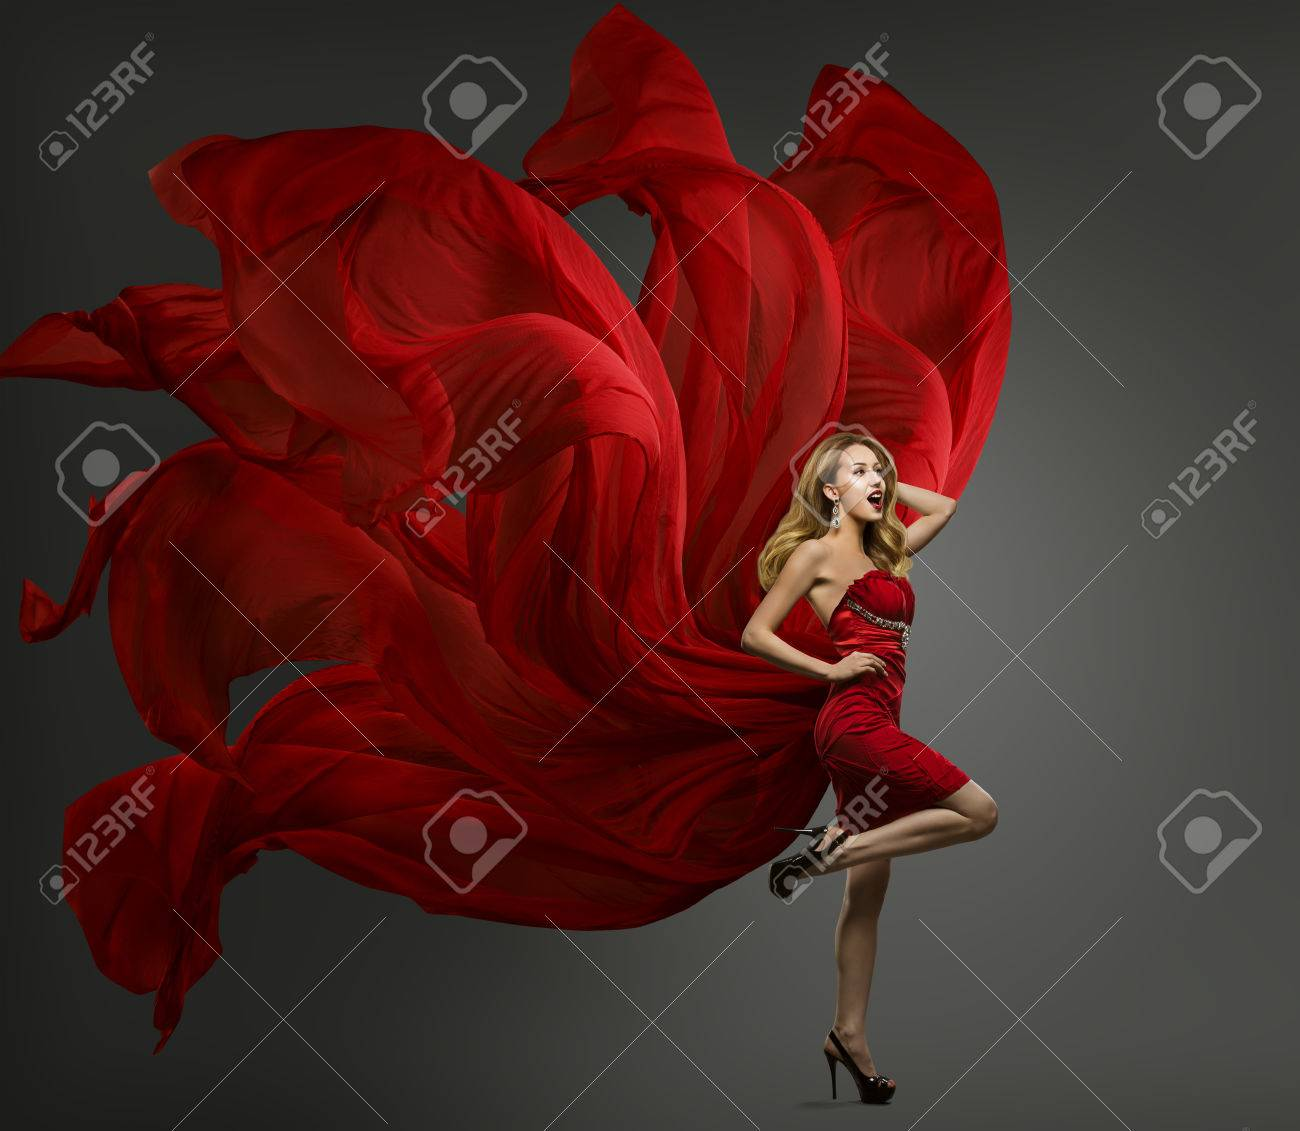 Fashion Model Red Dress, Woman Dancing in Flying Fabric Gown, Waving Fluttering Cloth - 68915132